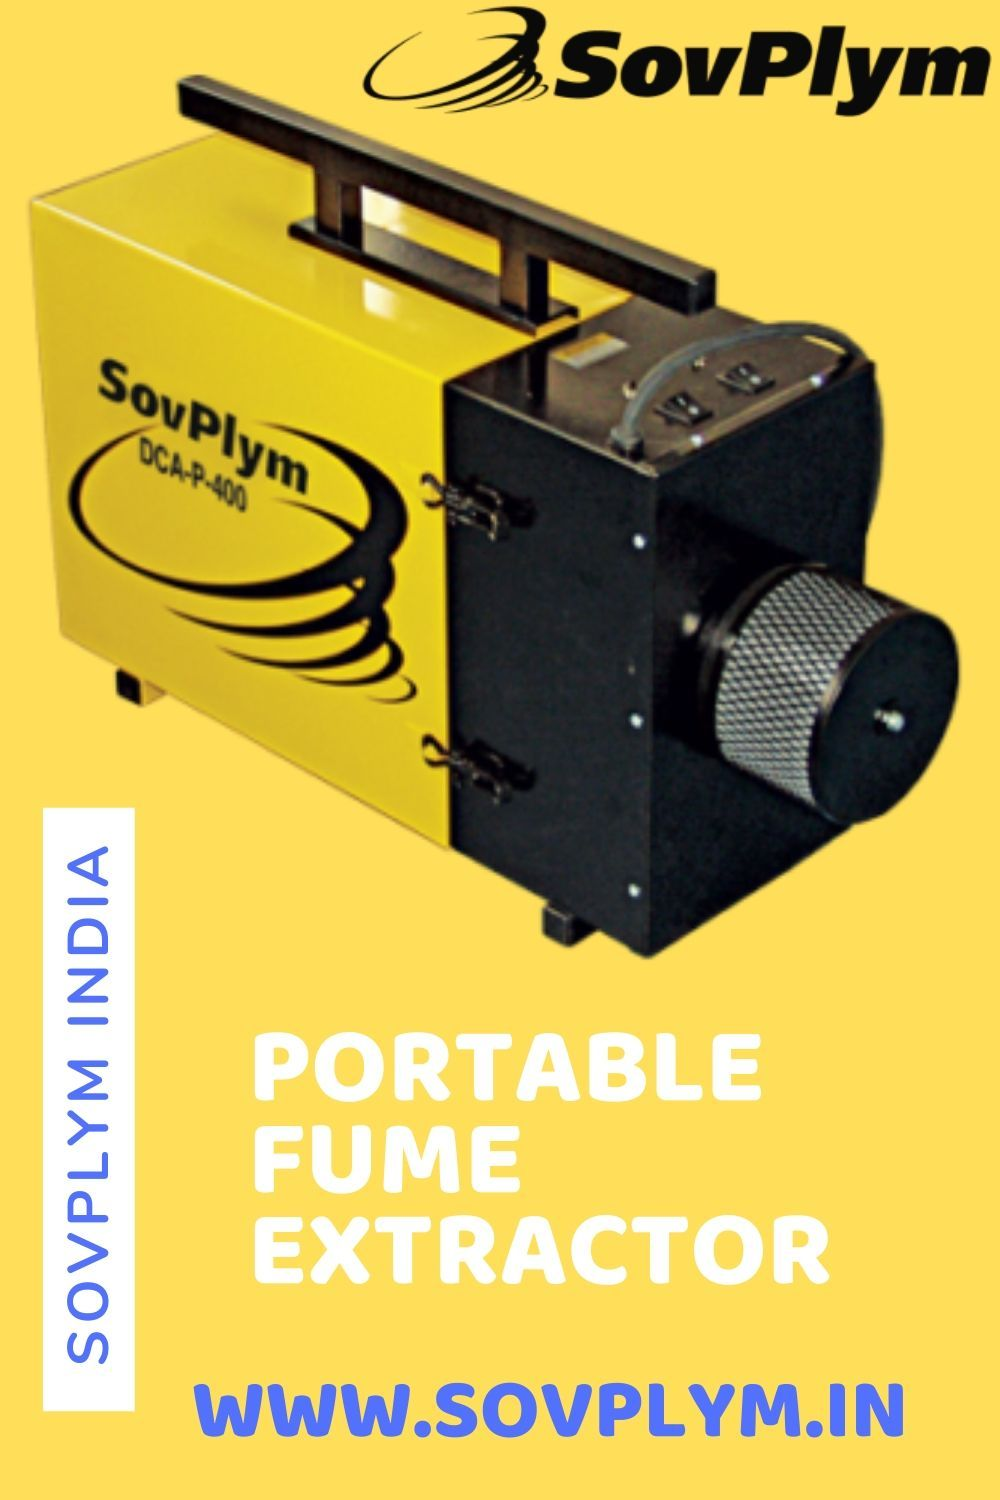 SovPlym offers mobile dust filters, portable fume